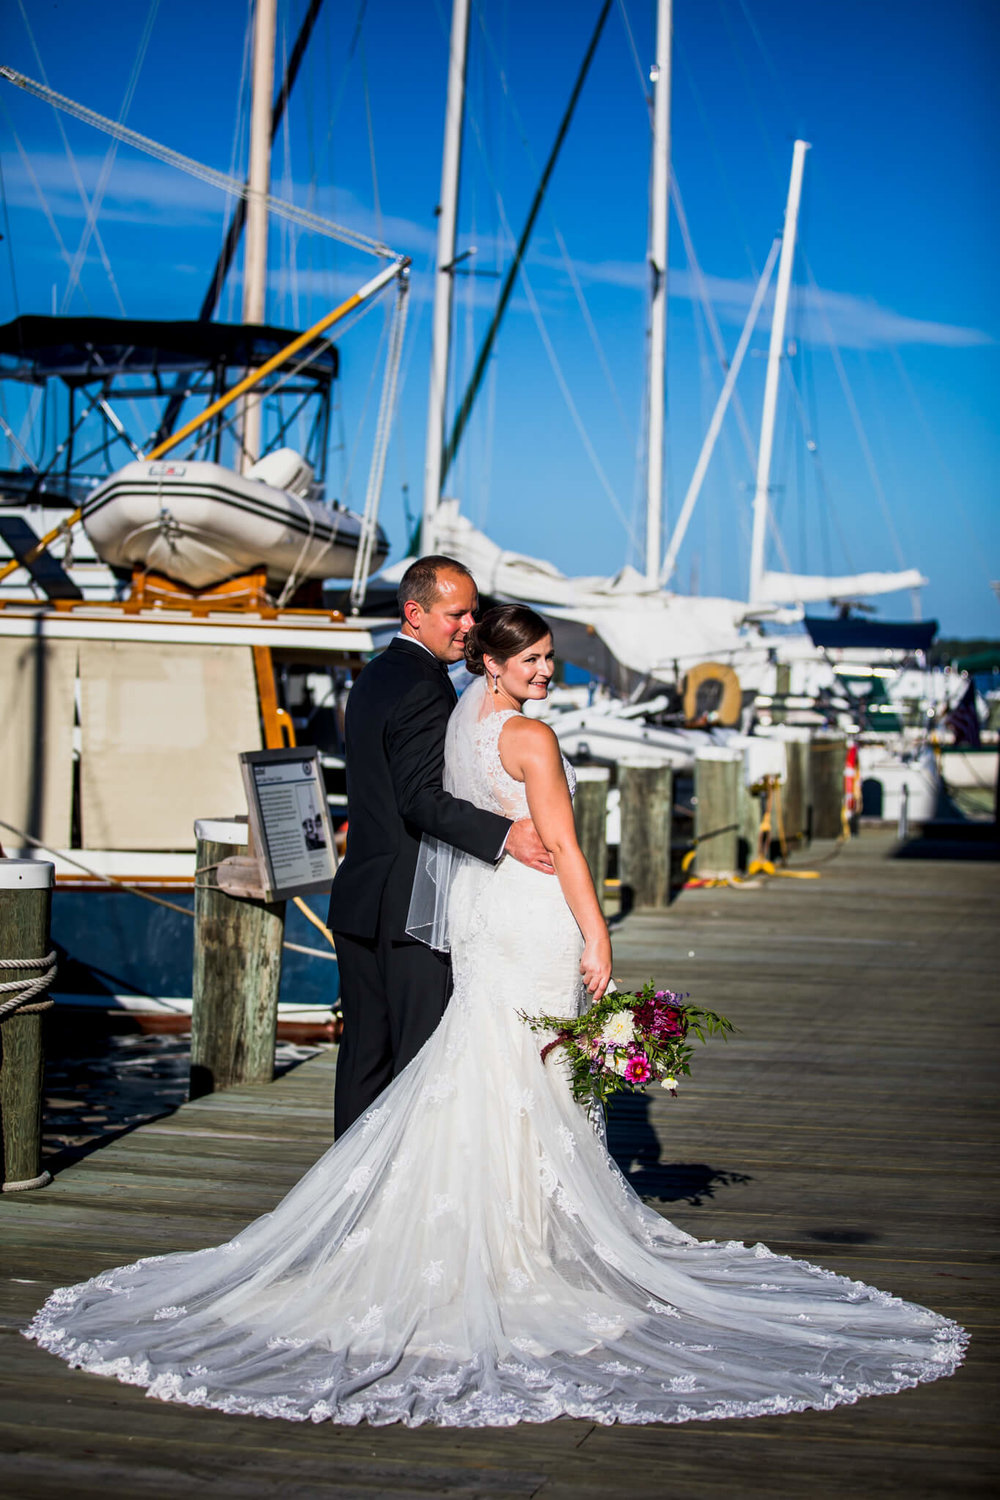 kate Matthew Chesapeake Maritime Museum MD Wedding-18.jpg